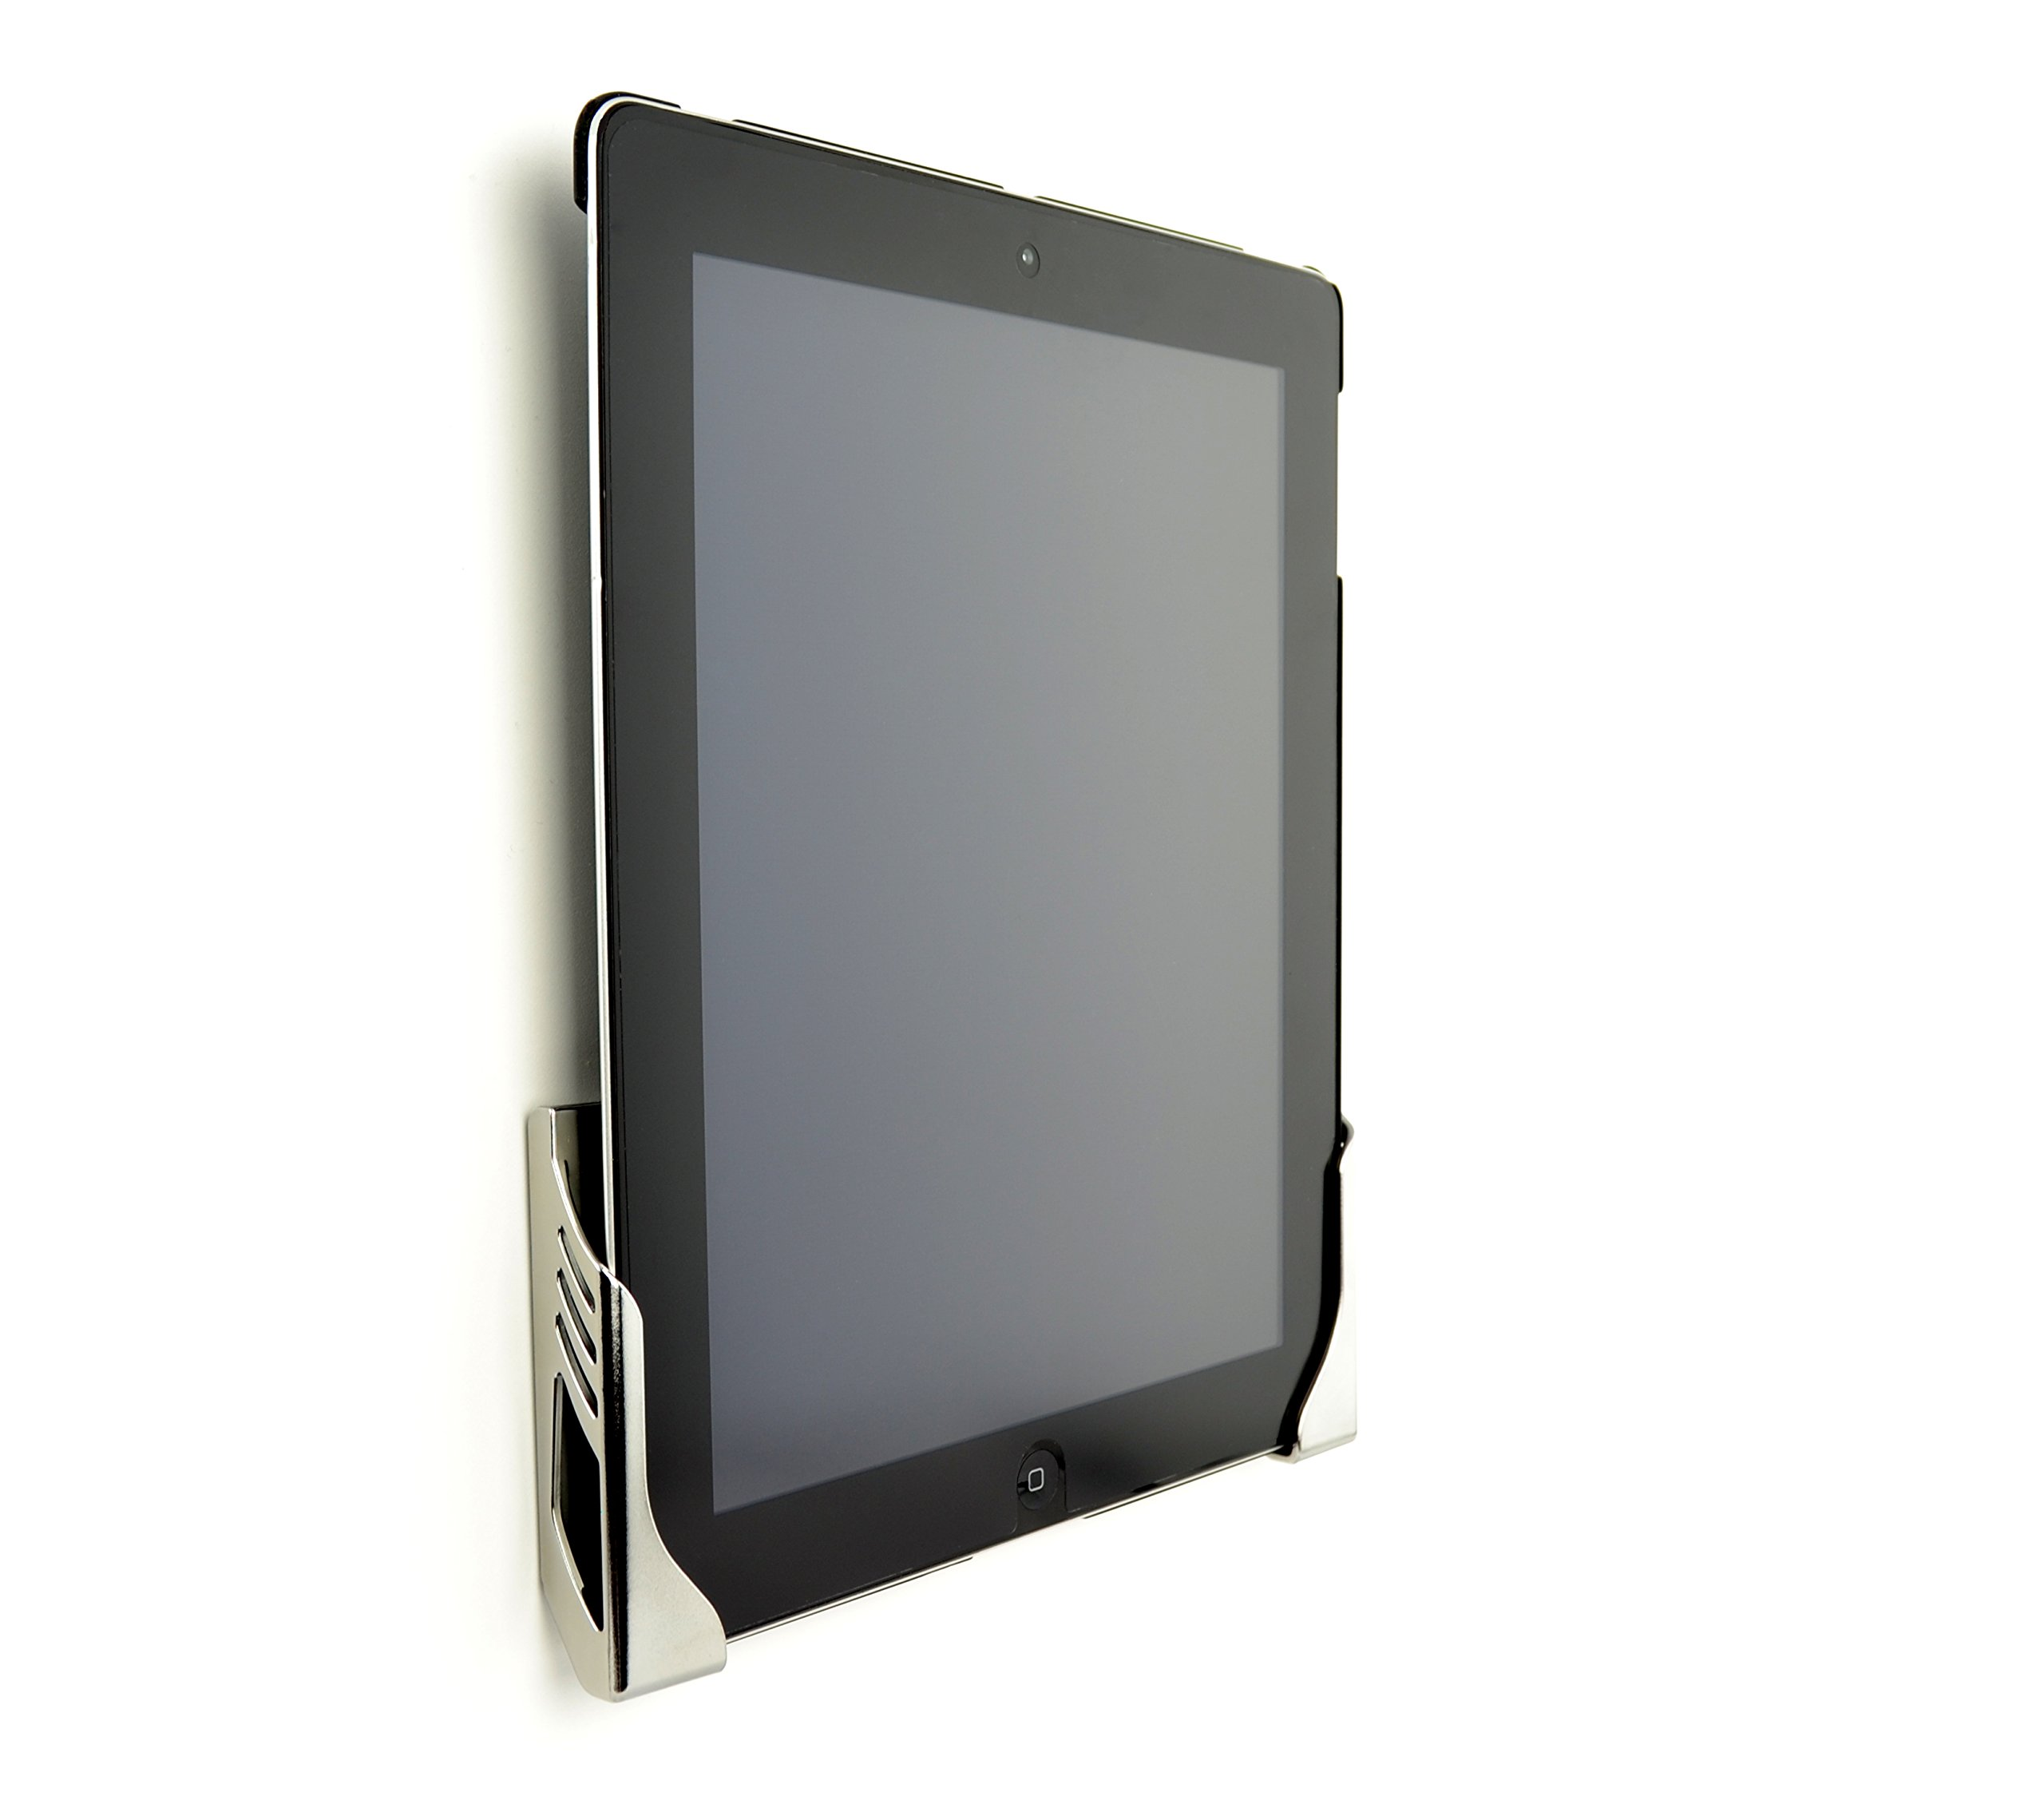 Koala Tablet Wall Mount by Dockem: Universal, Damage-Free Adhesive Wall Dock for iPads, Tablets, Smartphones, and eReaders (Chrome-Plated Plastic)